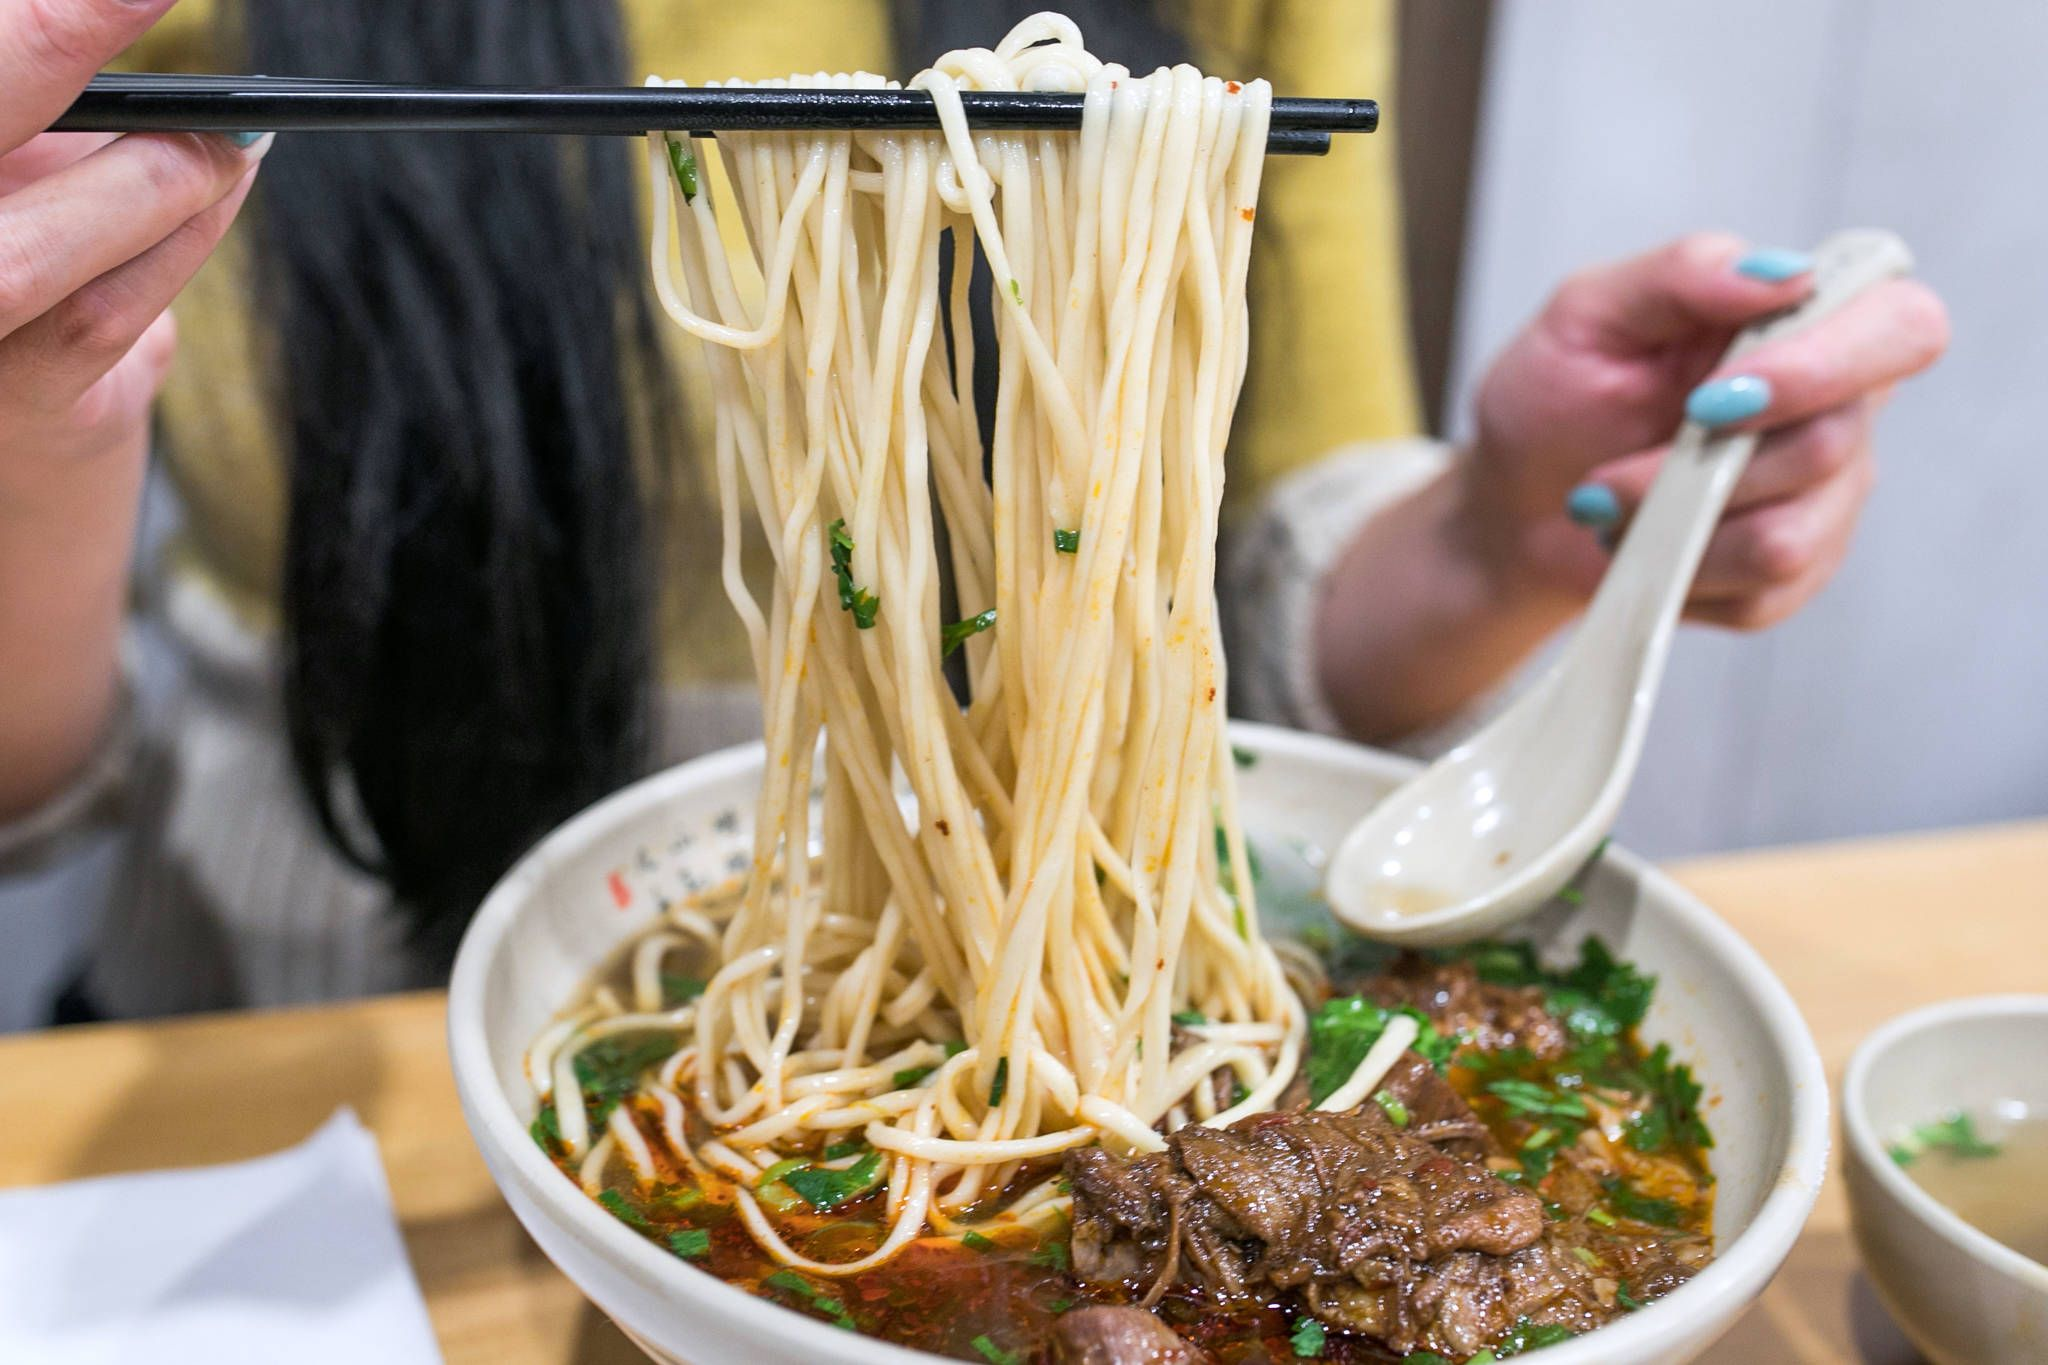 The Top 10 New Halal Restaurants In Toronto In 2020 With Images Best Vegetarian Restaurants Beef And Noodles Toronto Restaurants